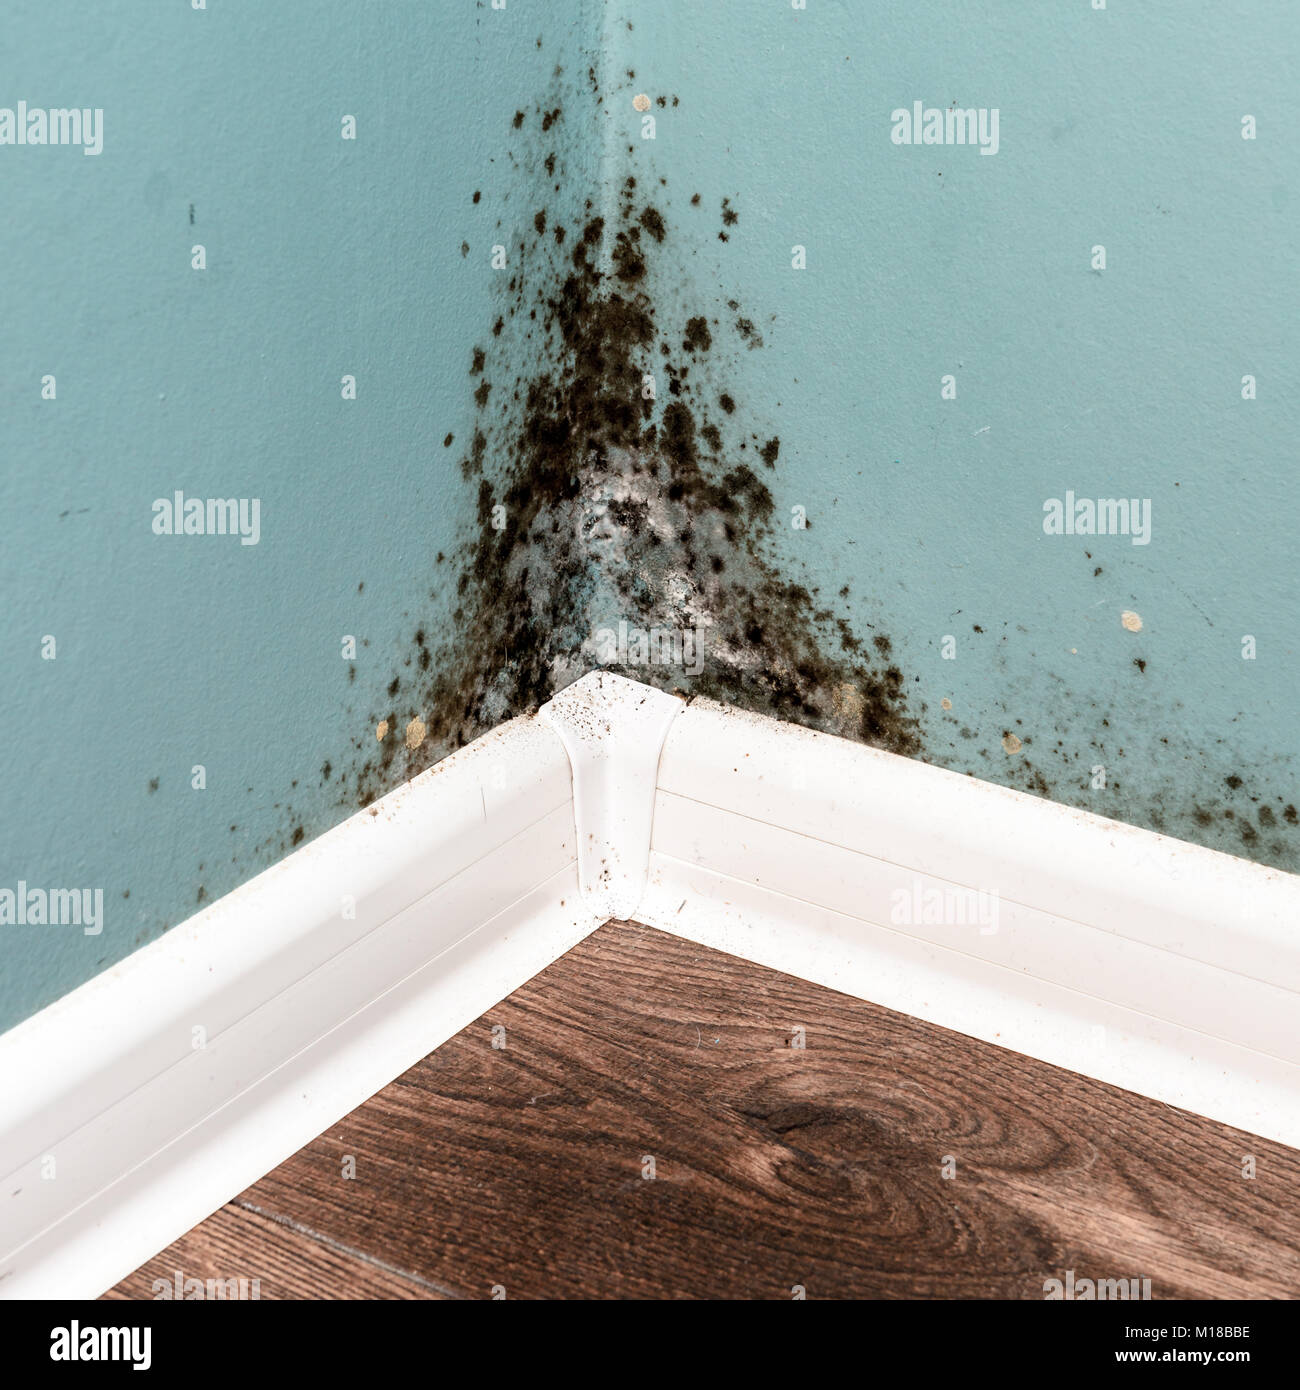 House Mold Stock Photos & House Mold Stock Images